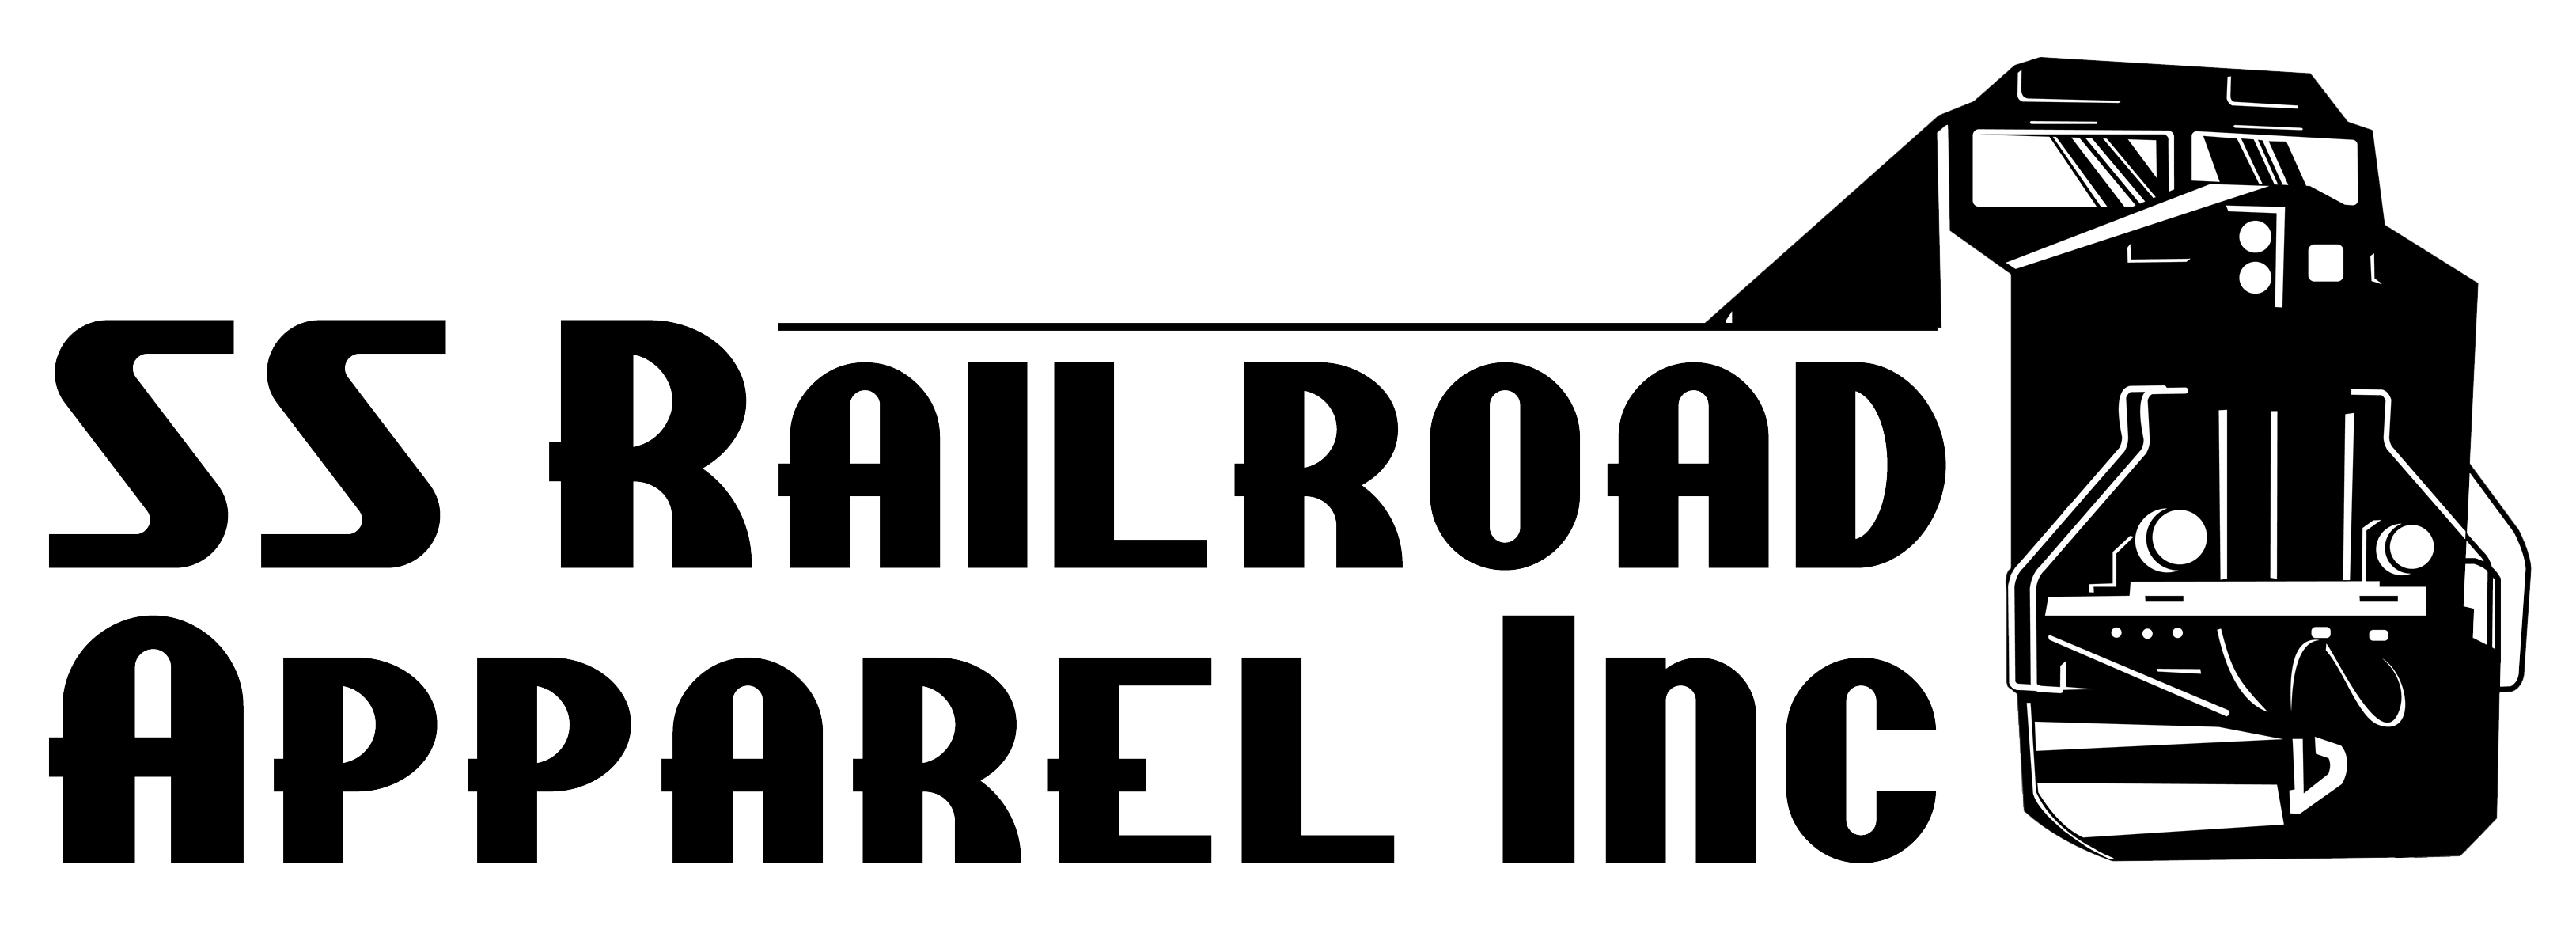 SS Railroad Apparel Inc.